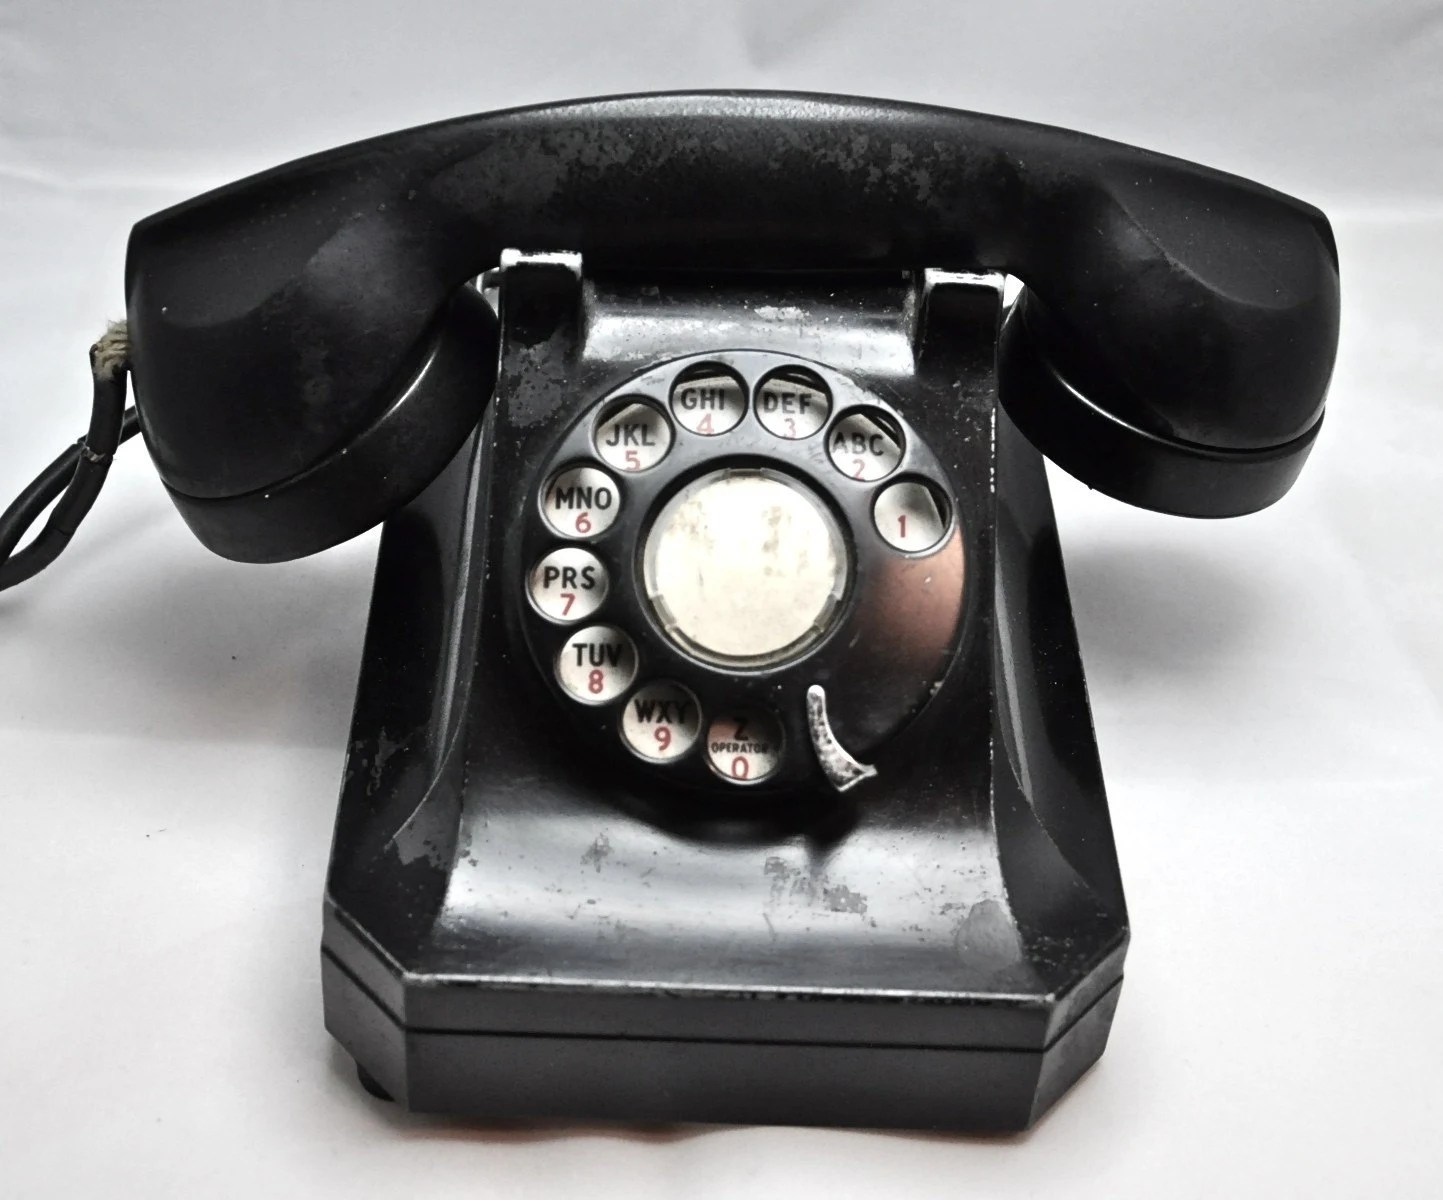 Does How Telephone Work It First